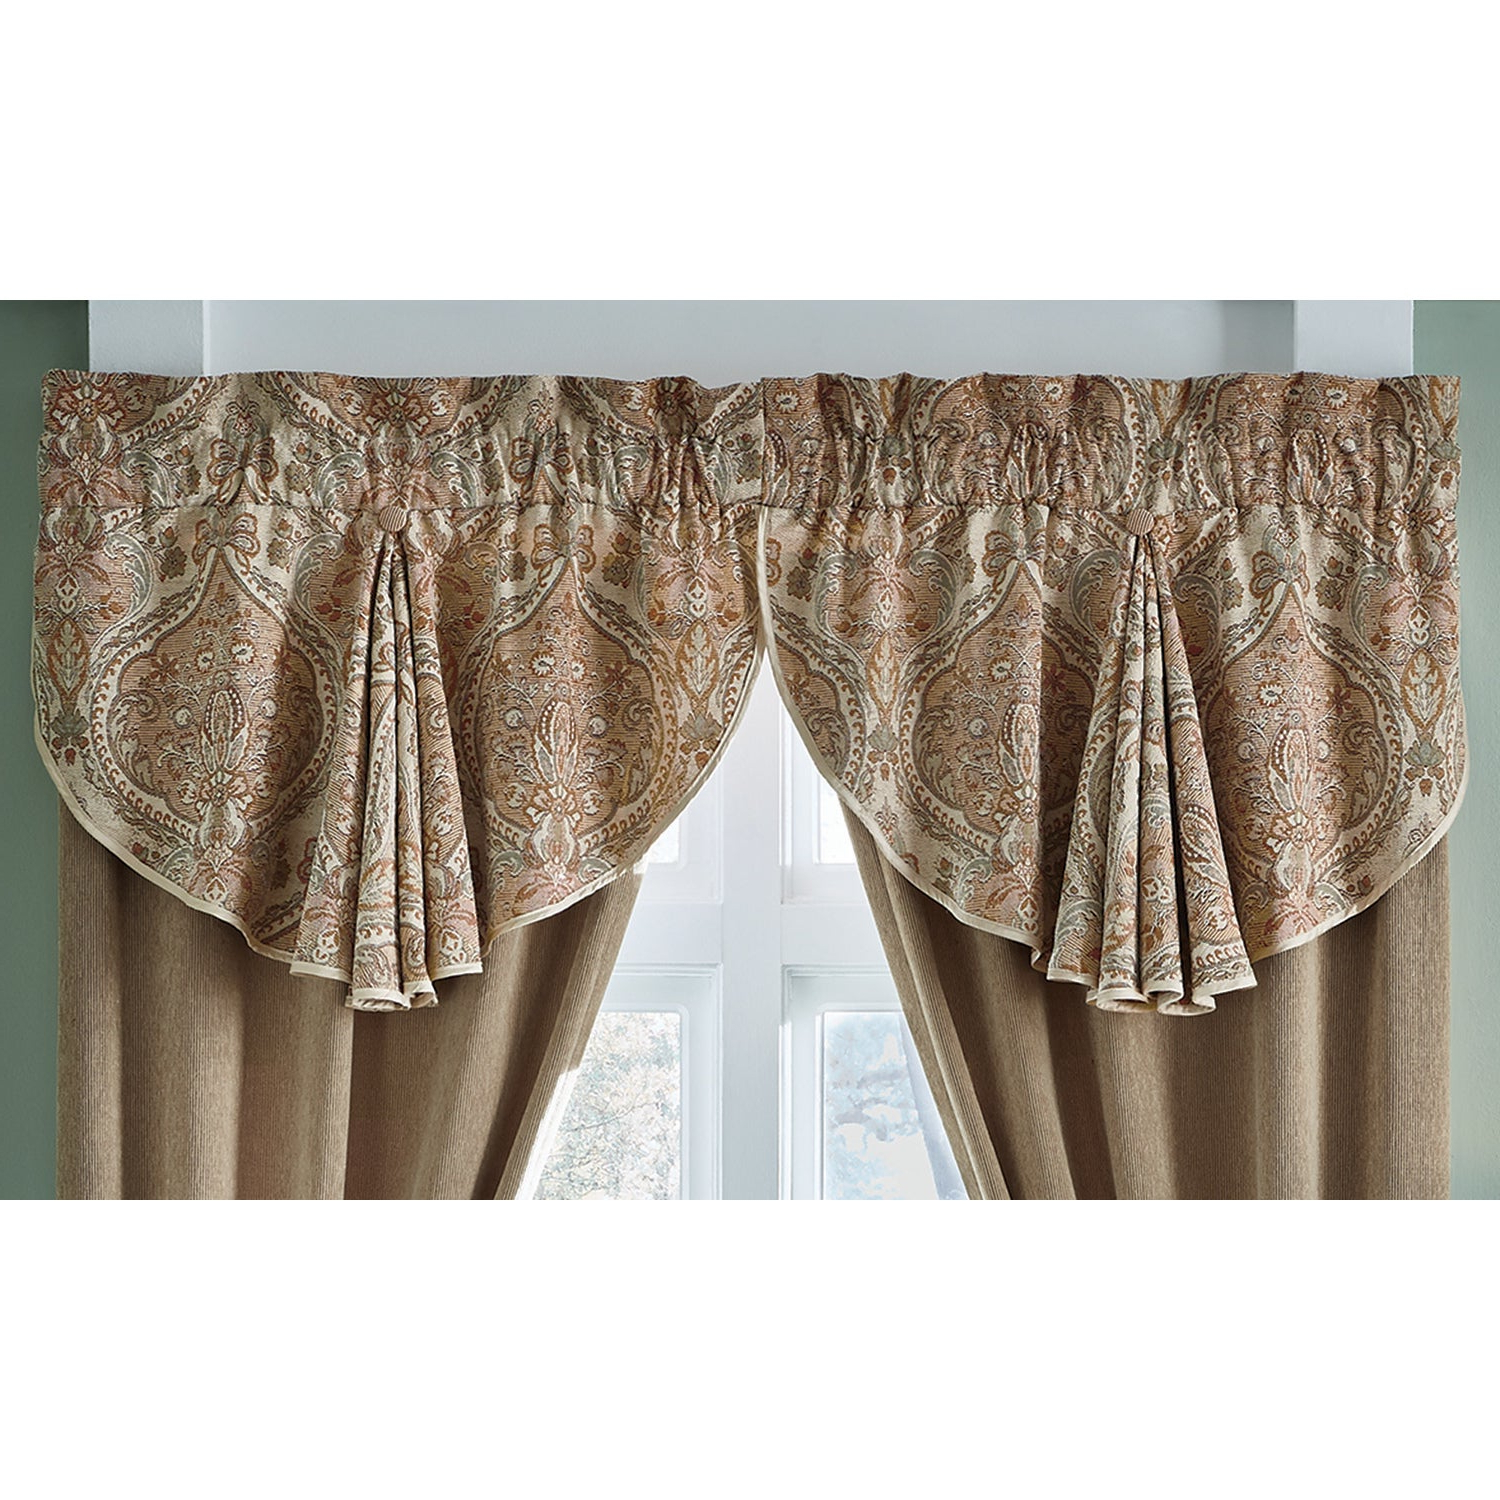 Croscill Birmingham Muticolor 24 Inch Circle Curtain Valance – 42 X 24 For Well Liked Circle Curtain Valances (View 10 of 20)